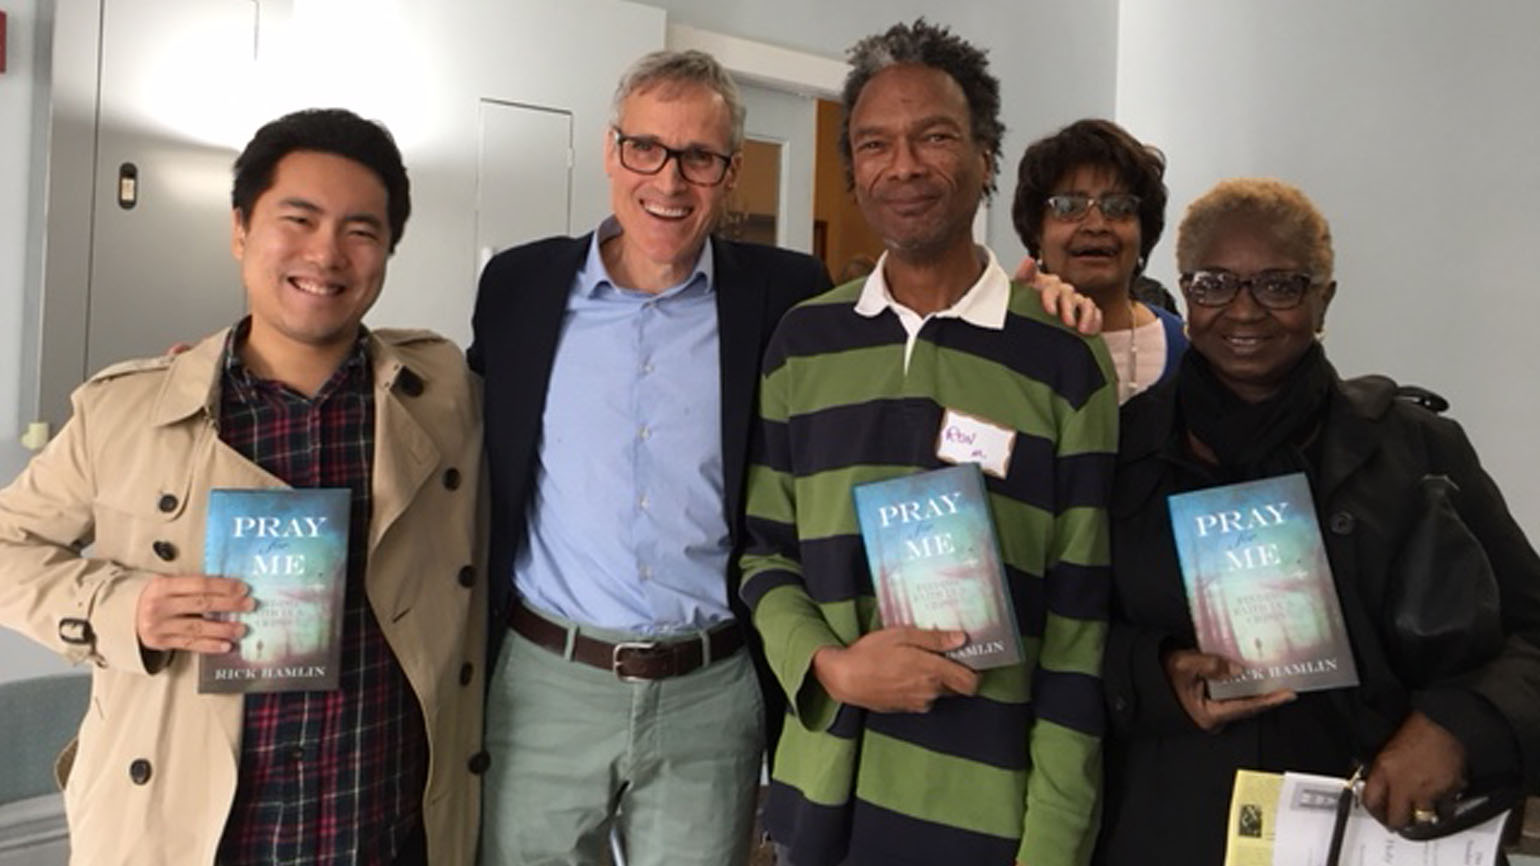 Rick Hamlin with a group of his church friends holding his new book, 'Pray for Me'.